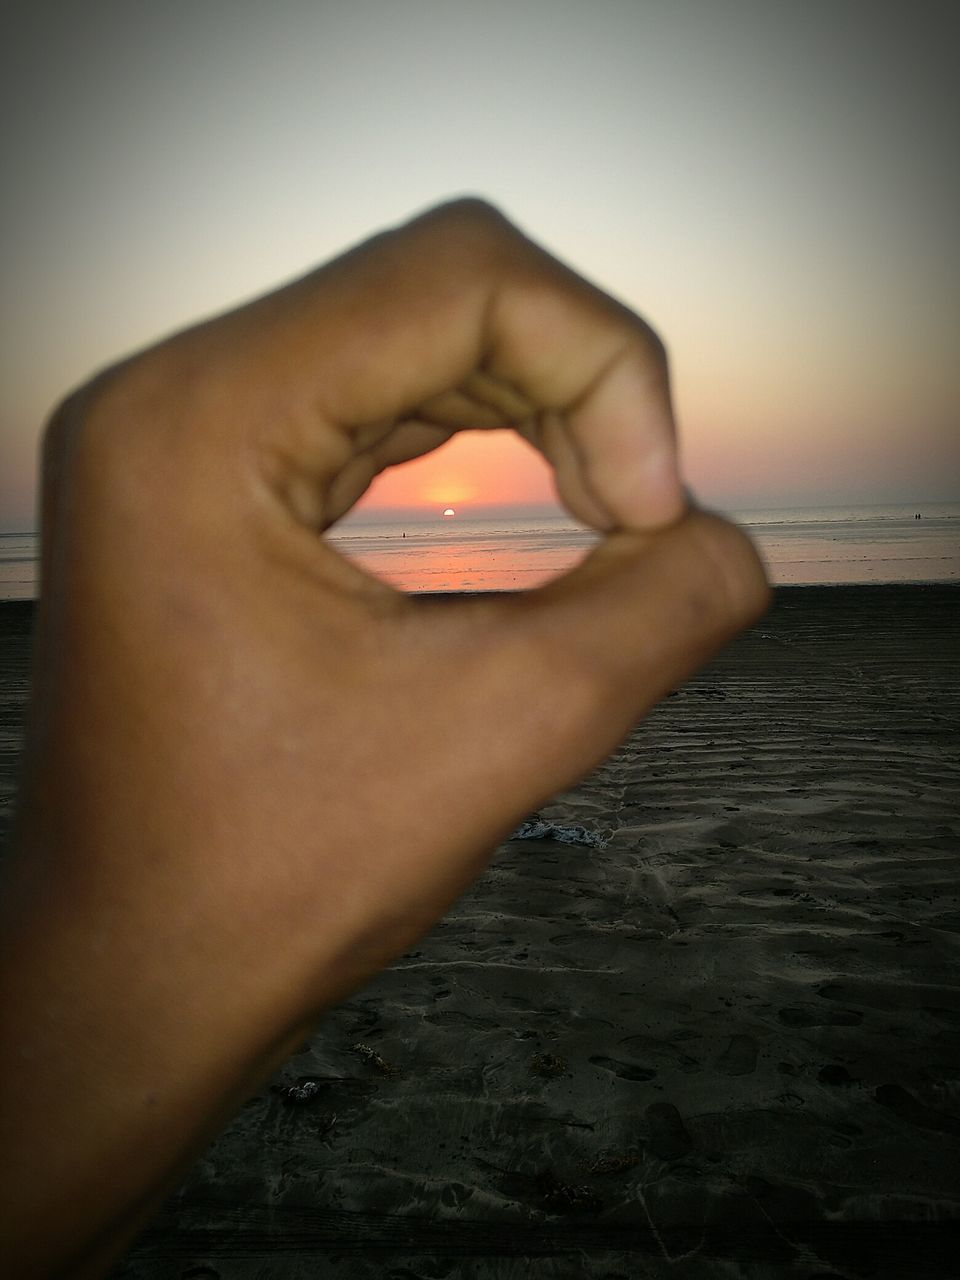 human hand, human body part, human finger, one person, sea, sunset, holding, optical illusion, close-up, beach, real people, outdoors, nature, sky, water, beauty in nature, day, adult, people